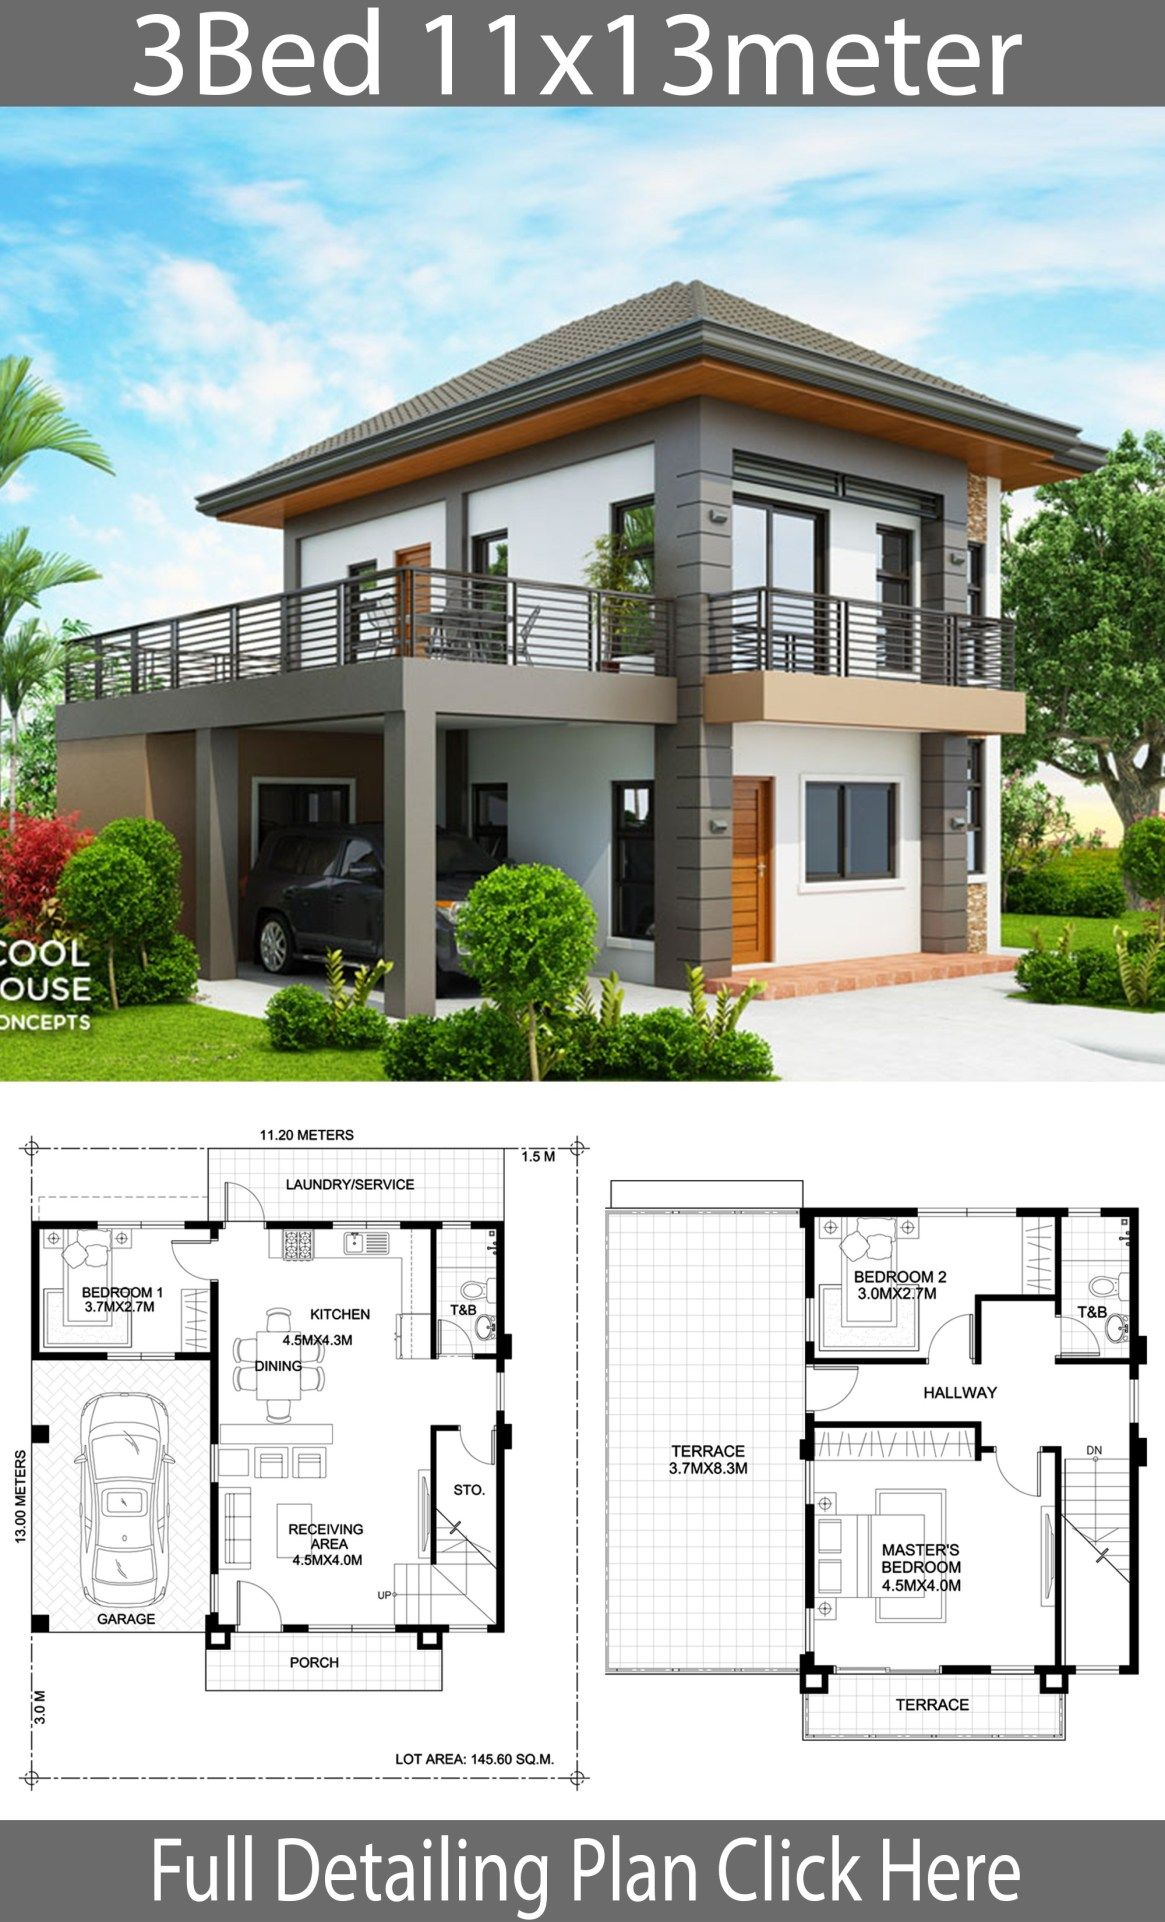 Home Design Plan 11x13m With 3 Bedrooms Home Design With Plansearch 2 Storey House Design Duplex House Design Small House Design Plans